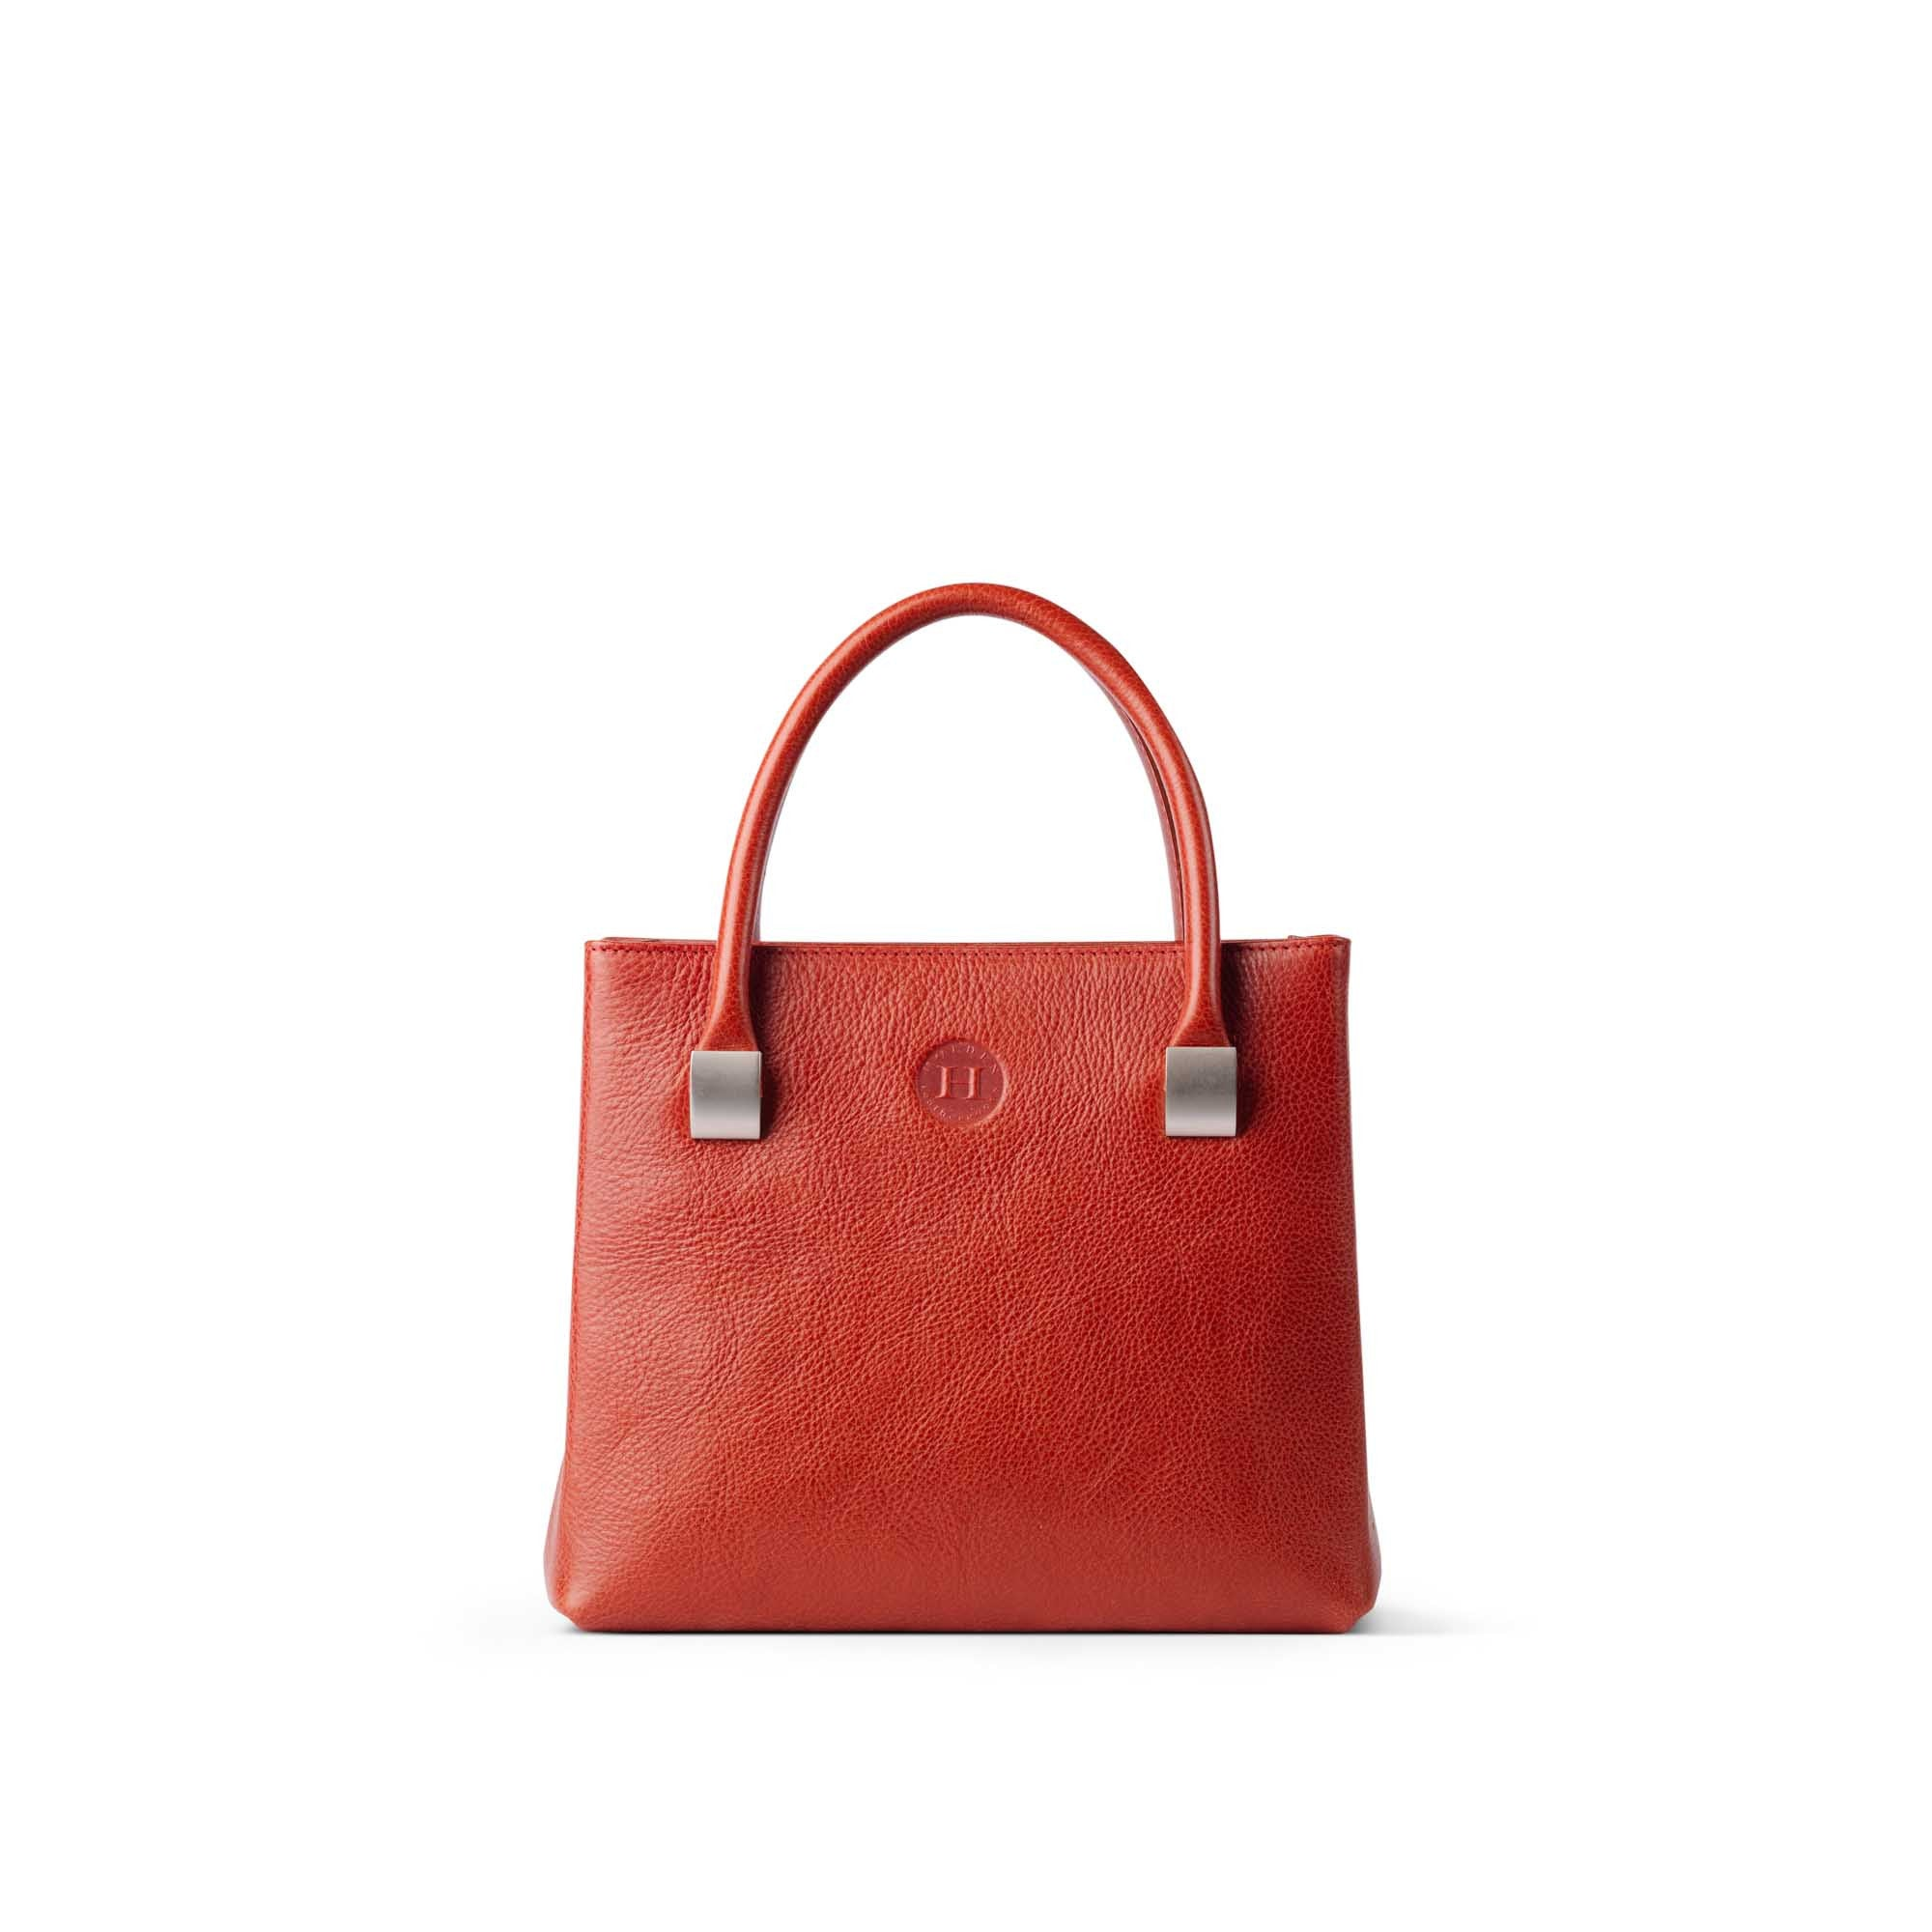 Aoife Leather Handbag Medium Red - Holden Leathergoods, leather bags handmade in Ireland